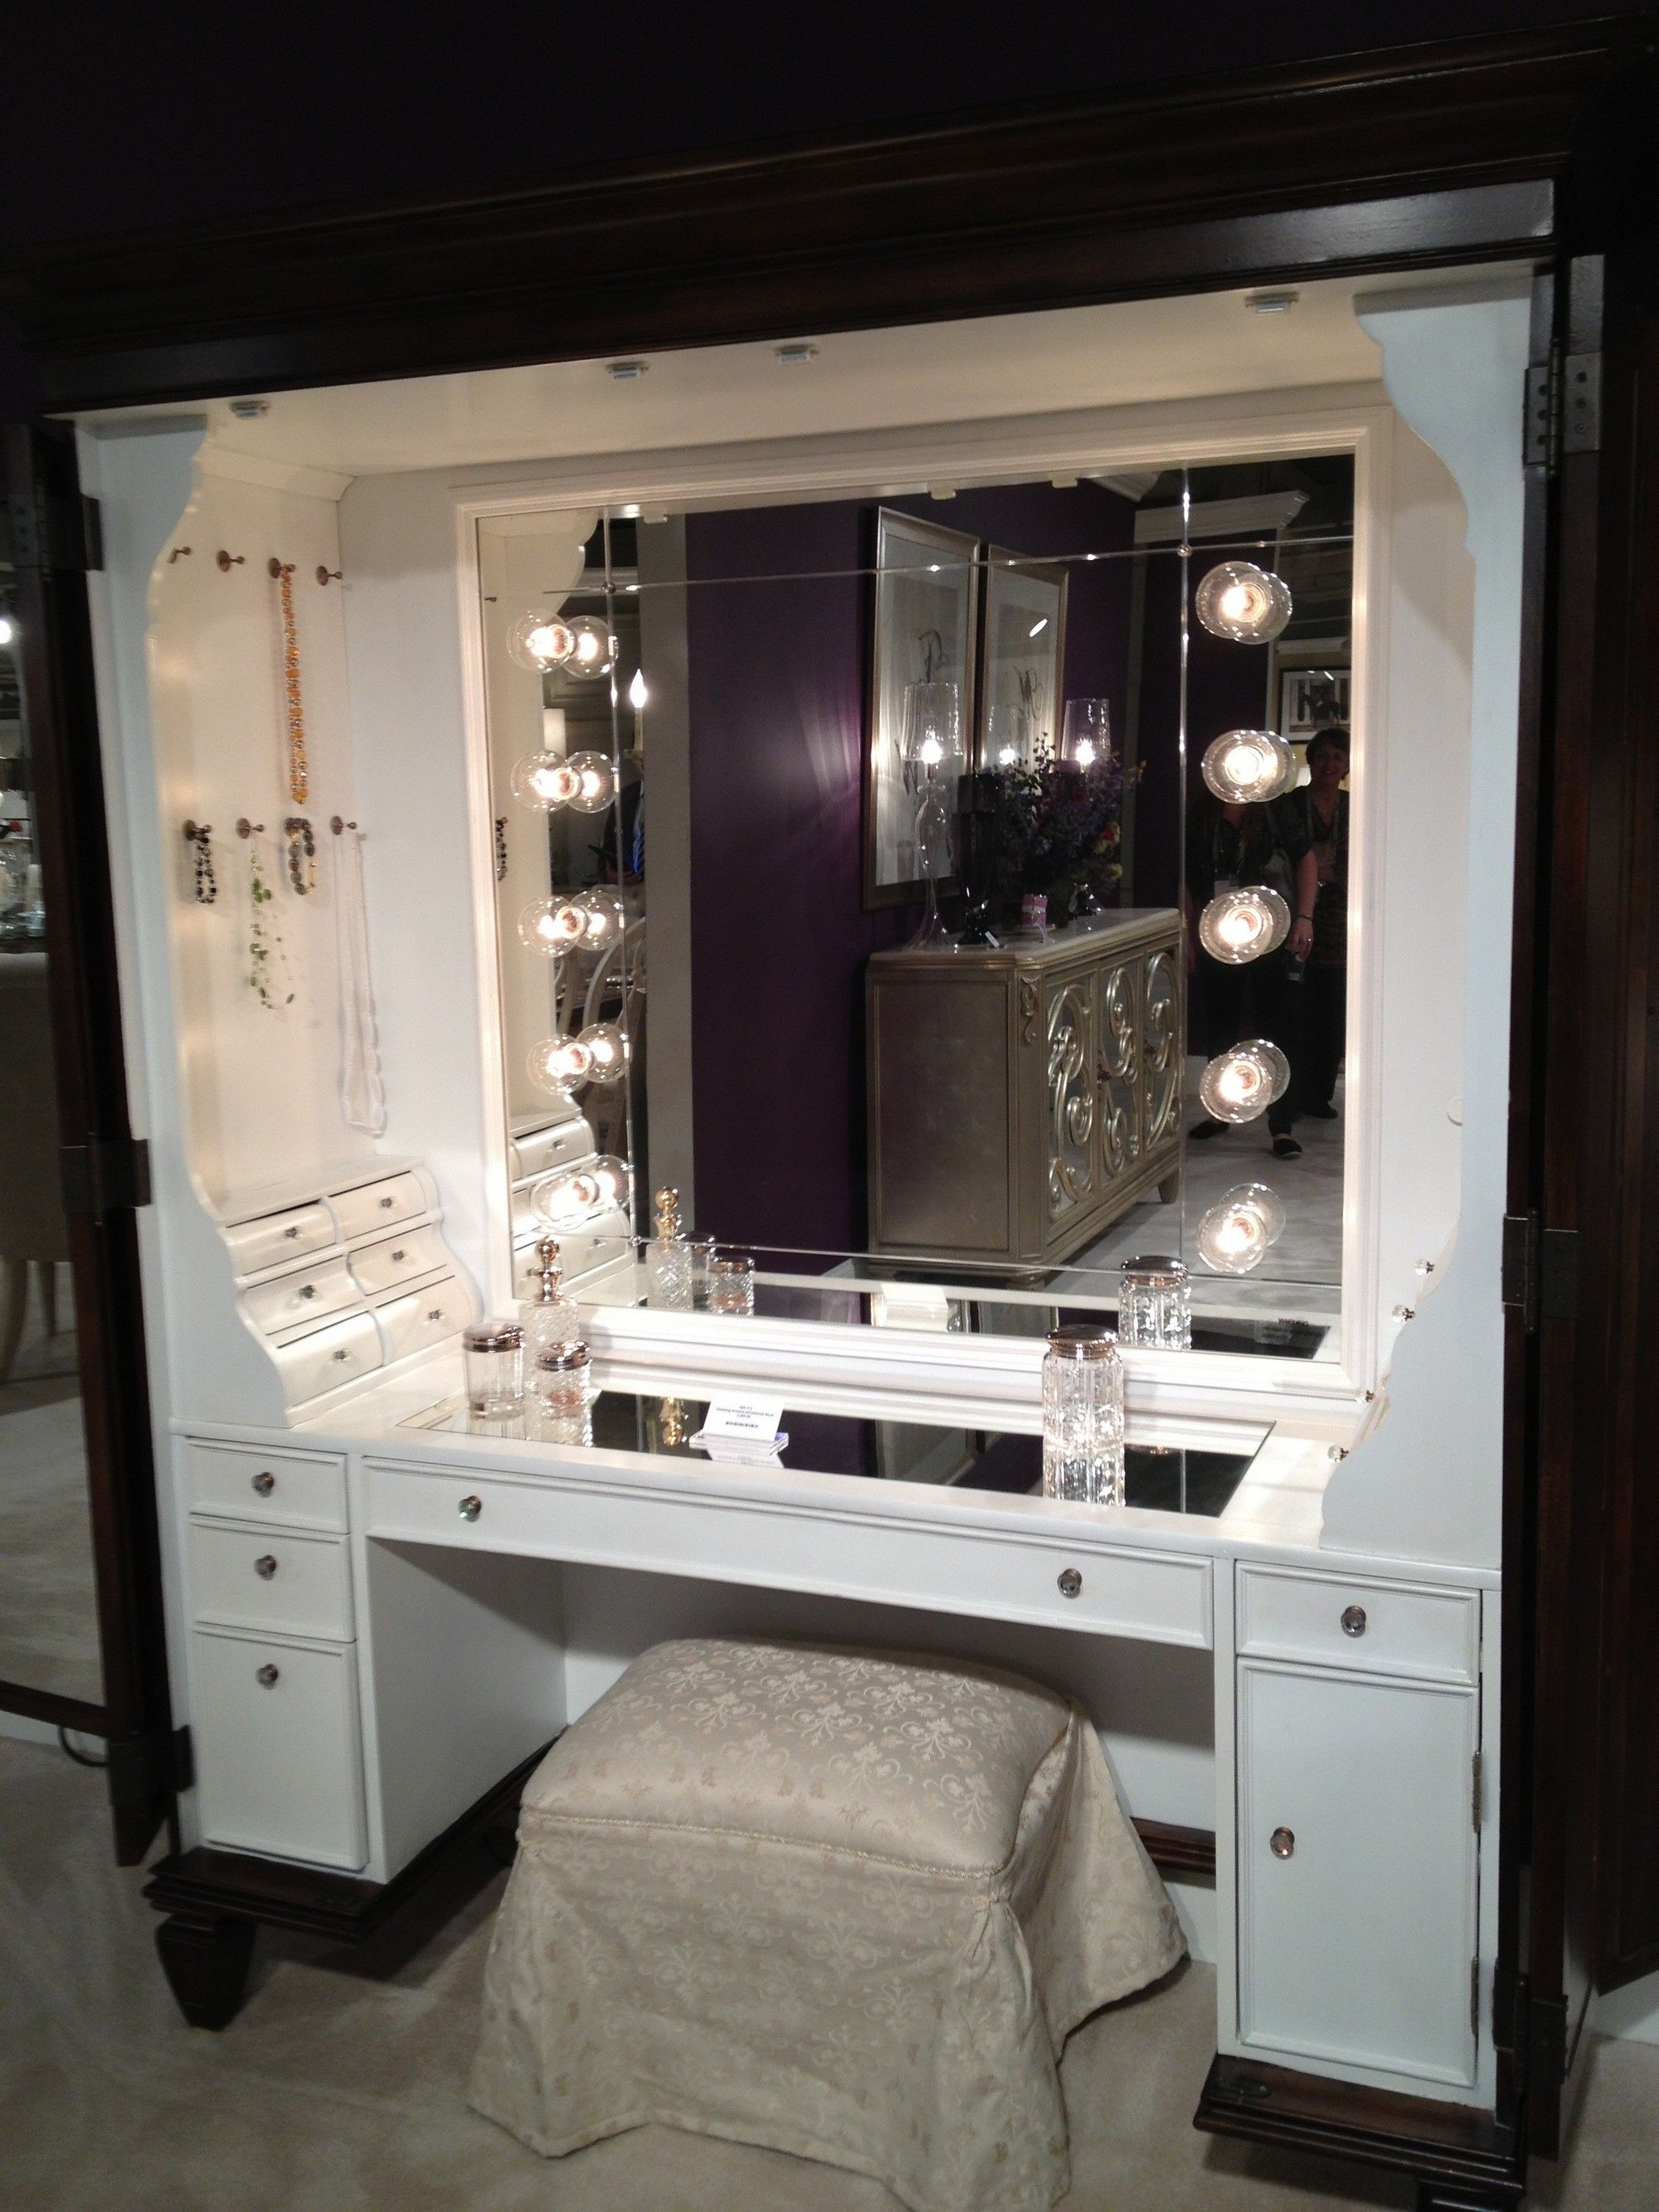 How To Choose The Vanity Furniture Darbylanefurniture Com In 2020 Diy Vanity Mirror Makeup Table Vanity Vanity Table With Lights